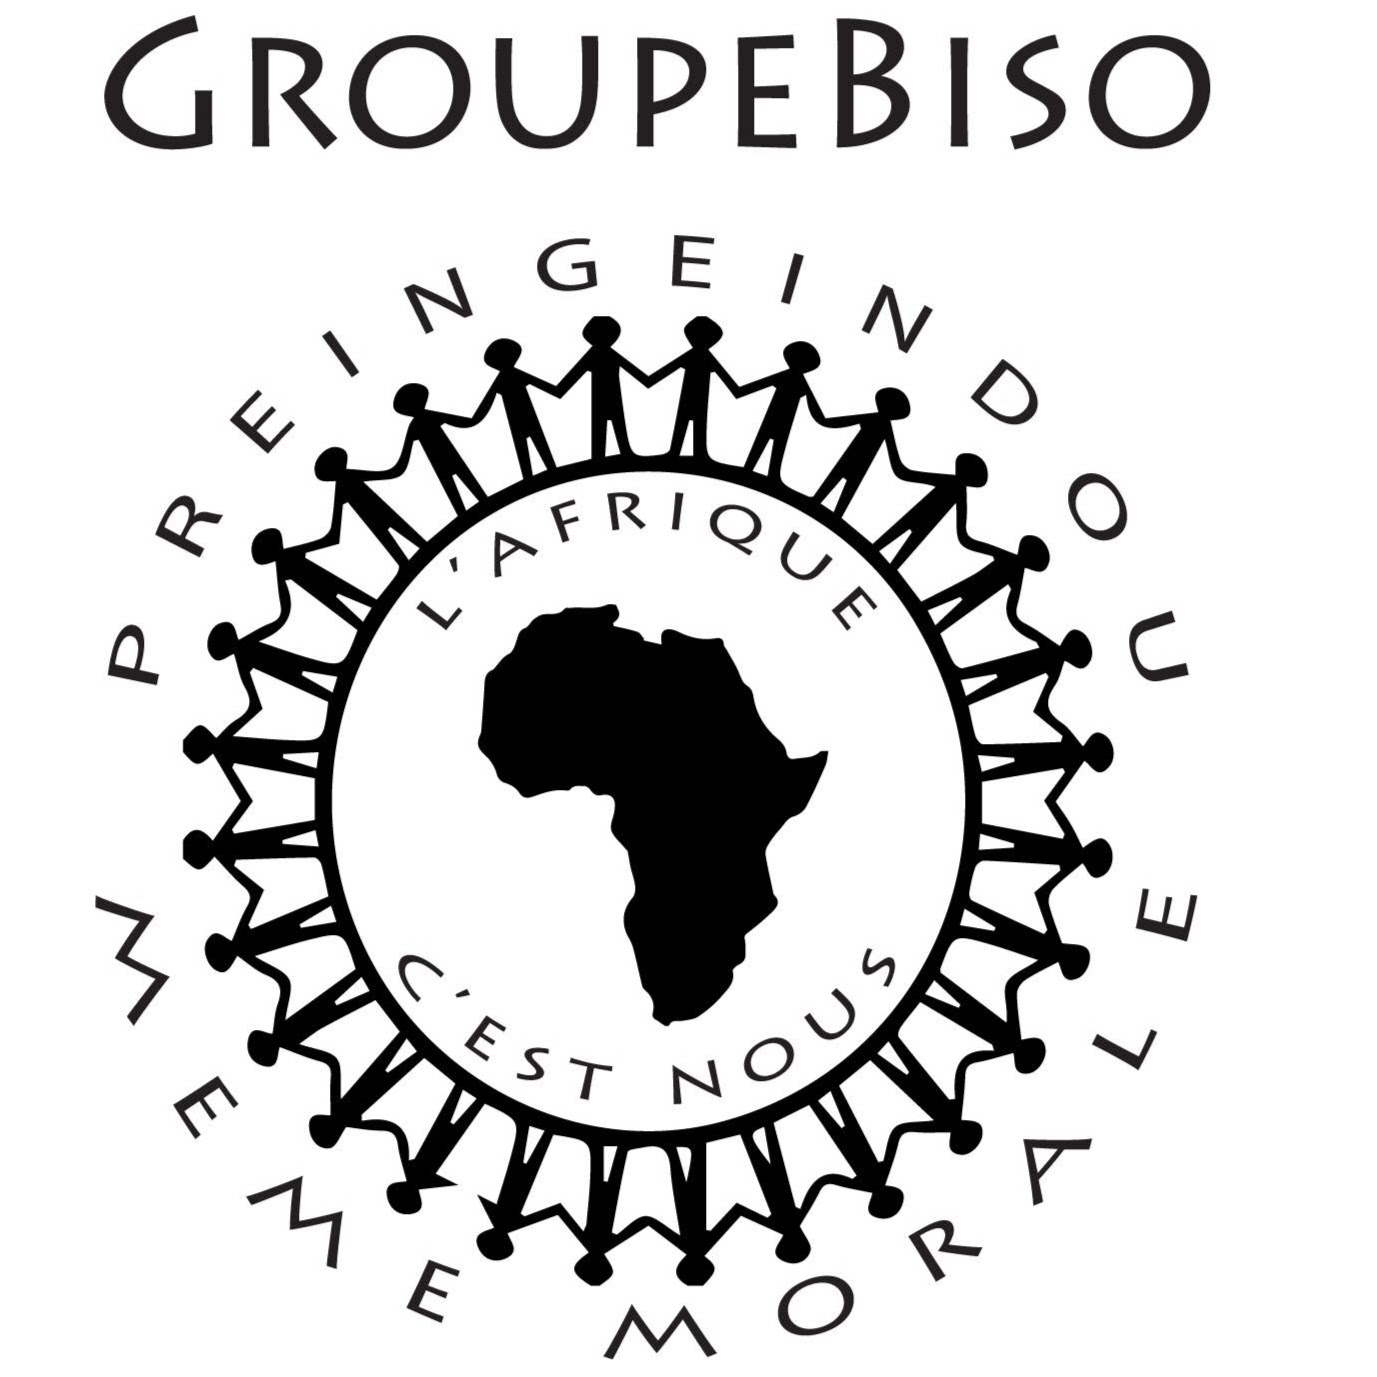 Groupe Biso